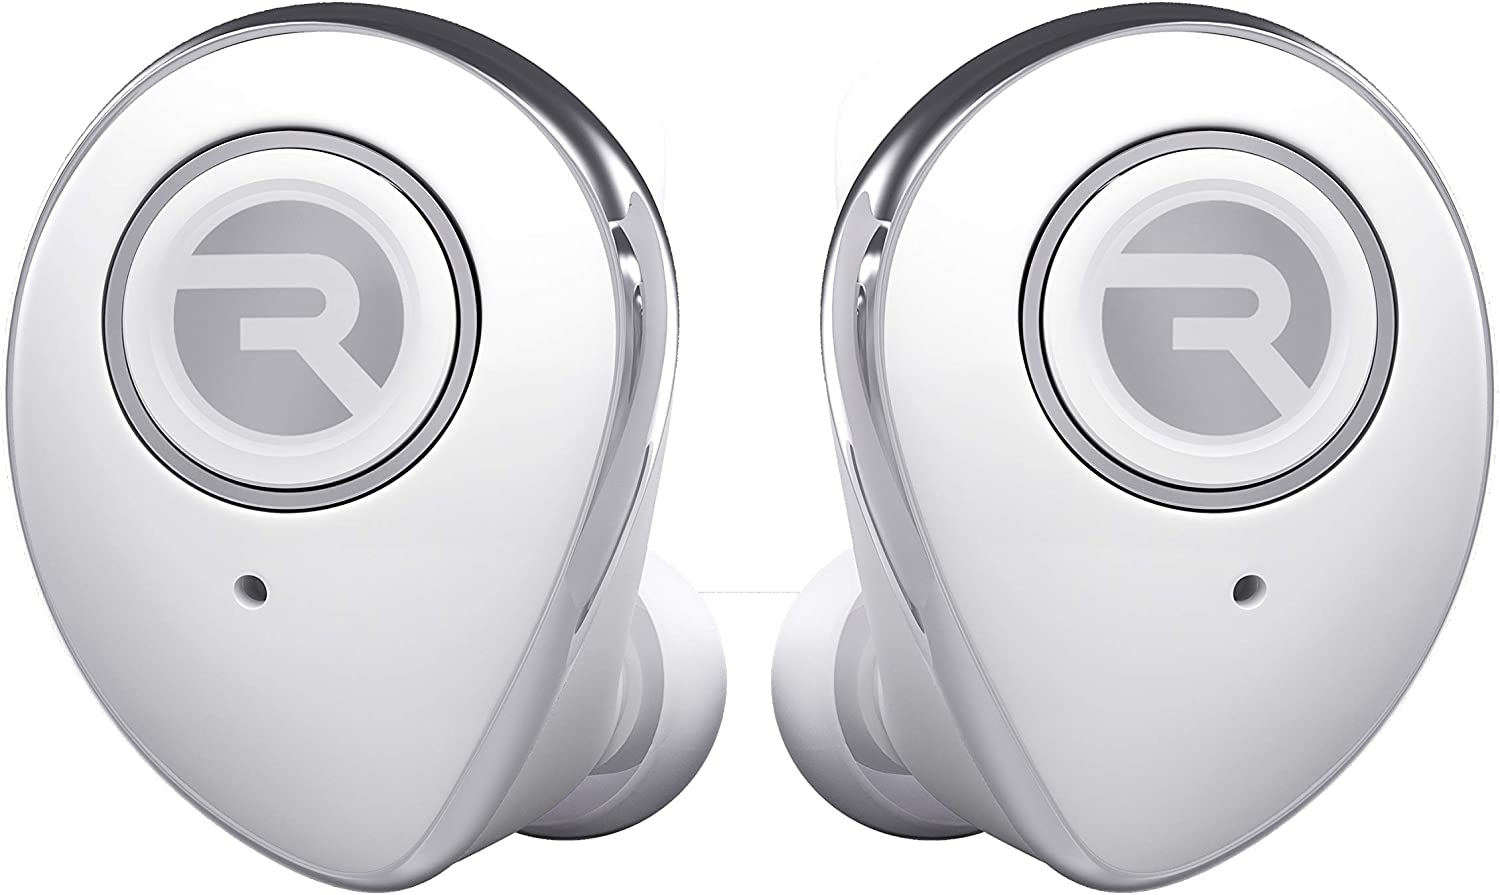 Raycon E50 New Shipping Free Wireless Earbuds All items in the store Headphones Bluetooth - 5.0